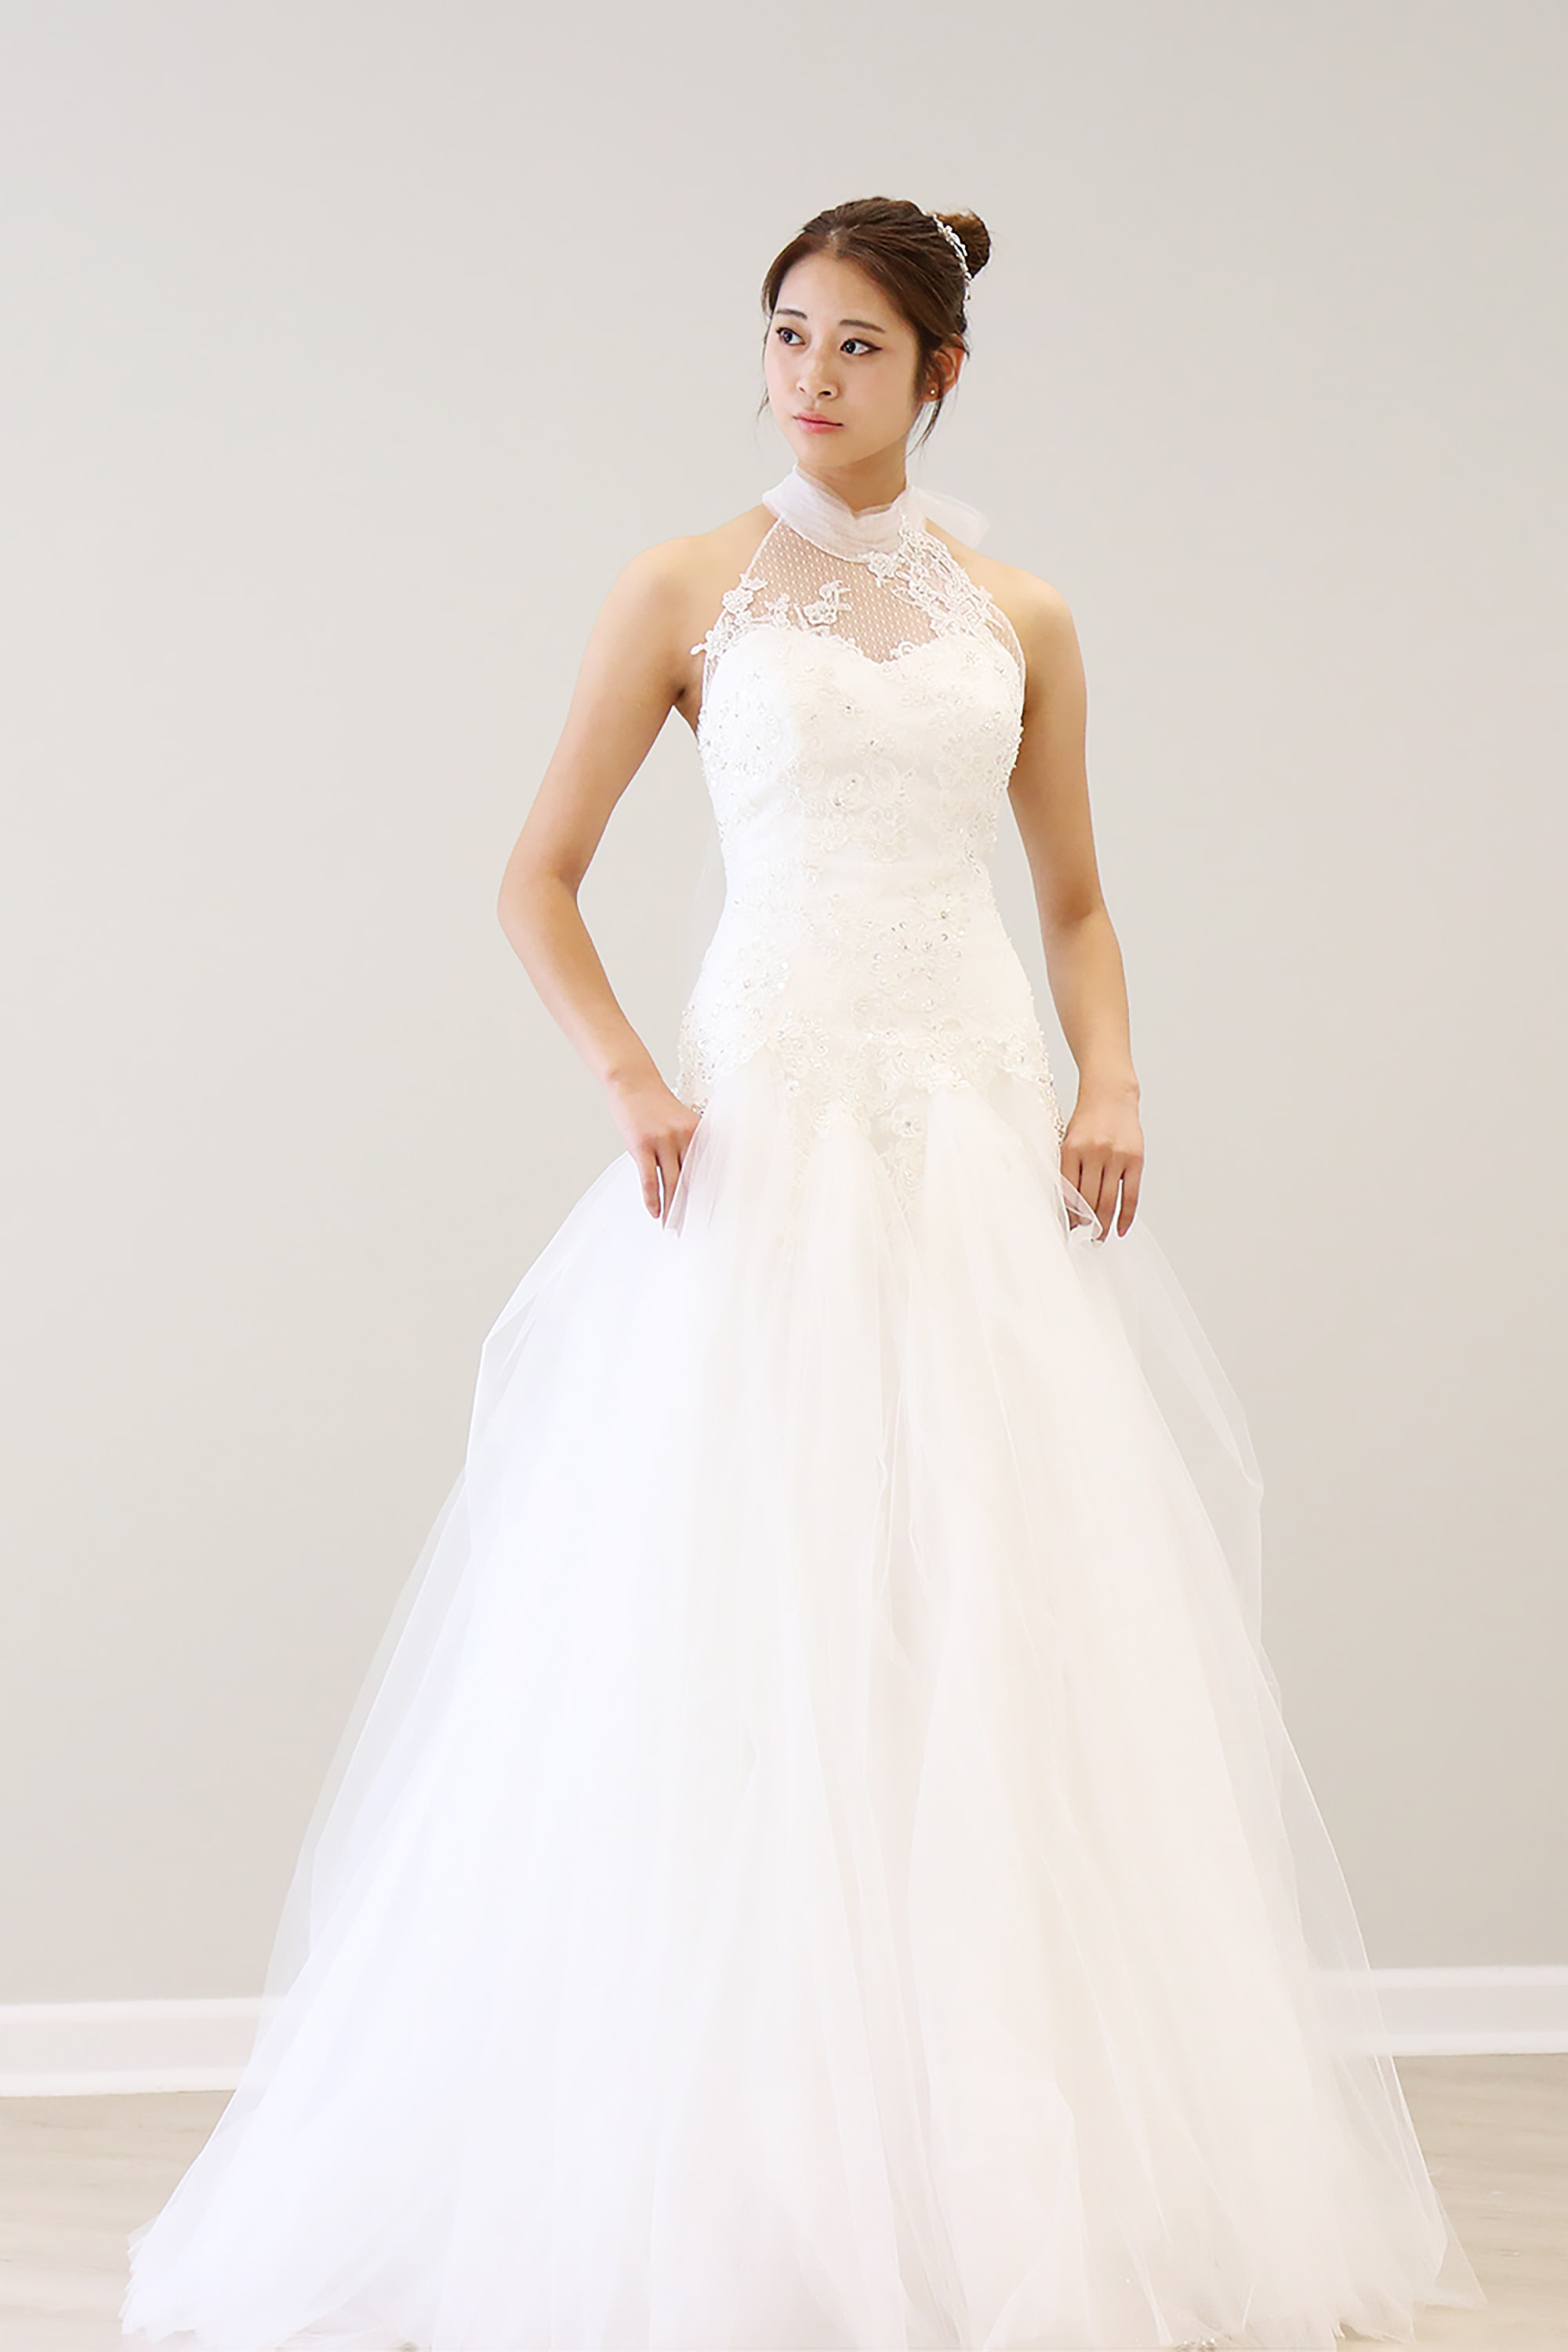 Ciel Blanc, WEDDING DRESS, BALLGOWN